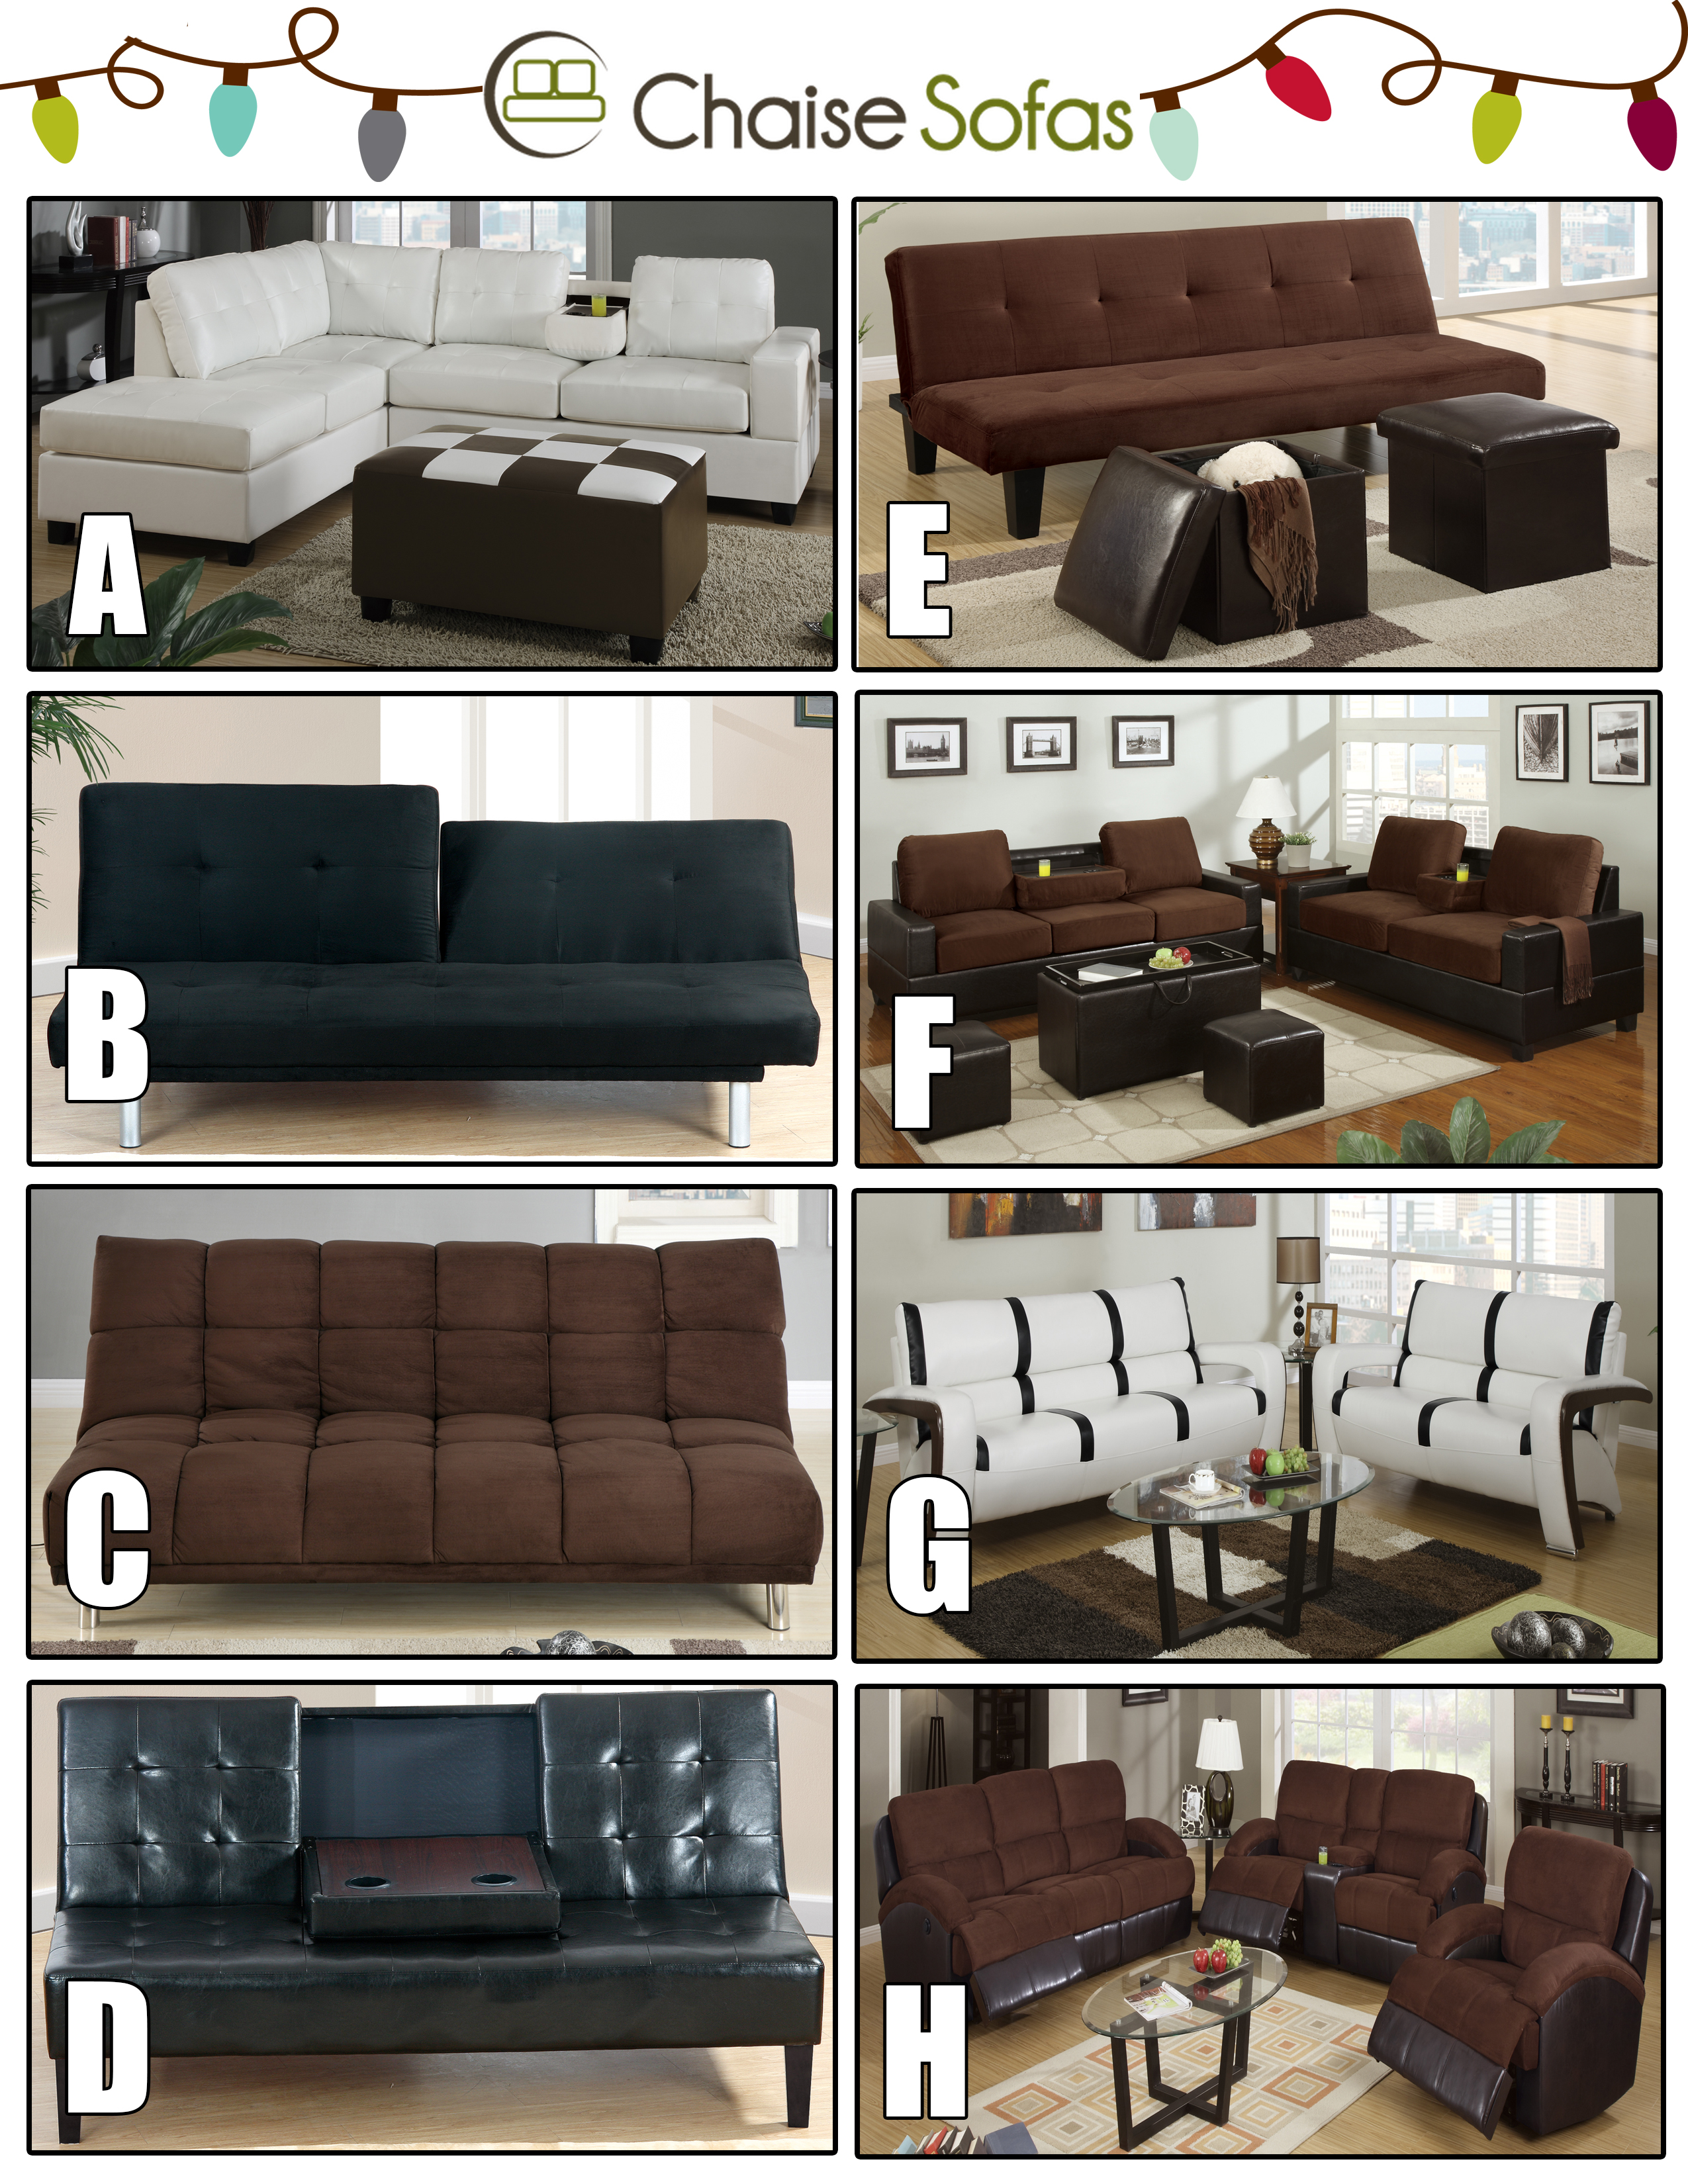 chaise sofas perth review microfiber sectional sofa costco chaisesofas cheap lounge suites page 2